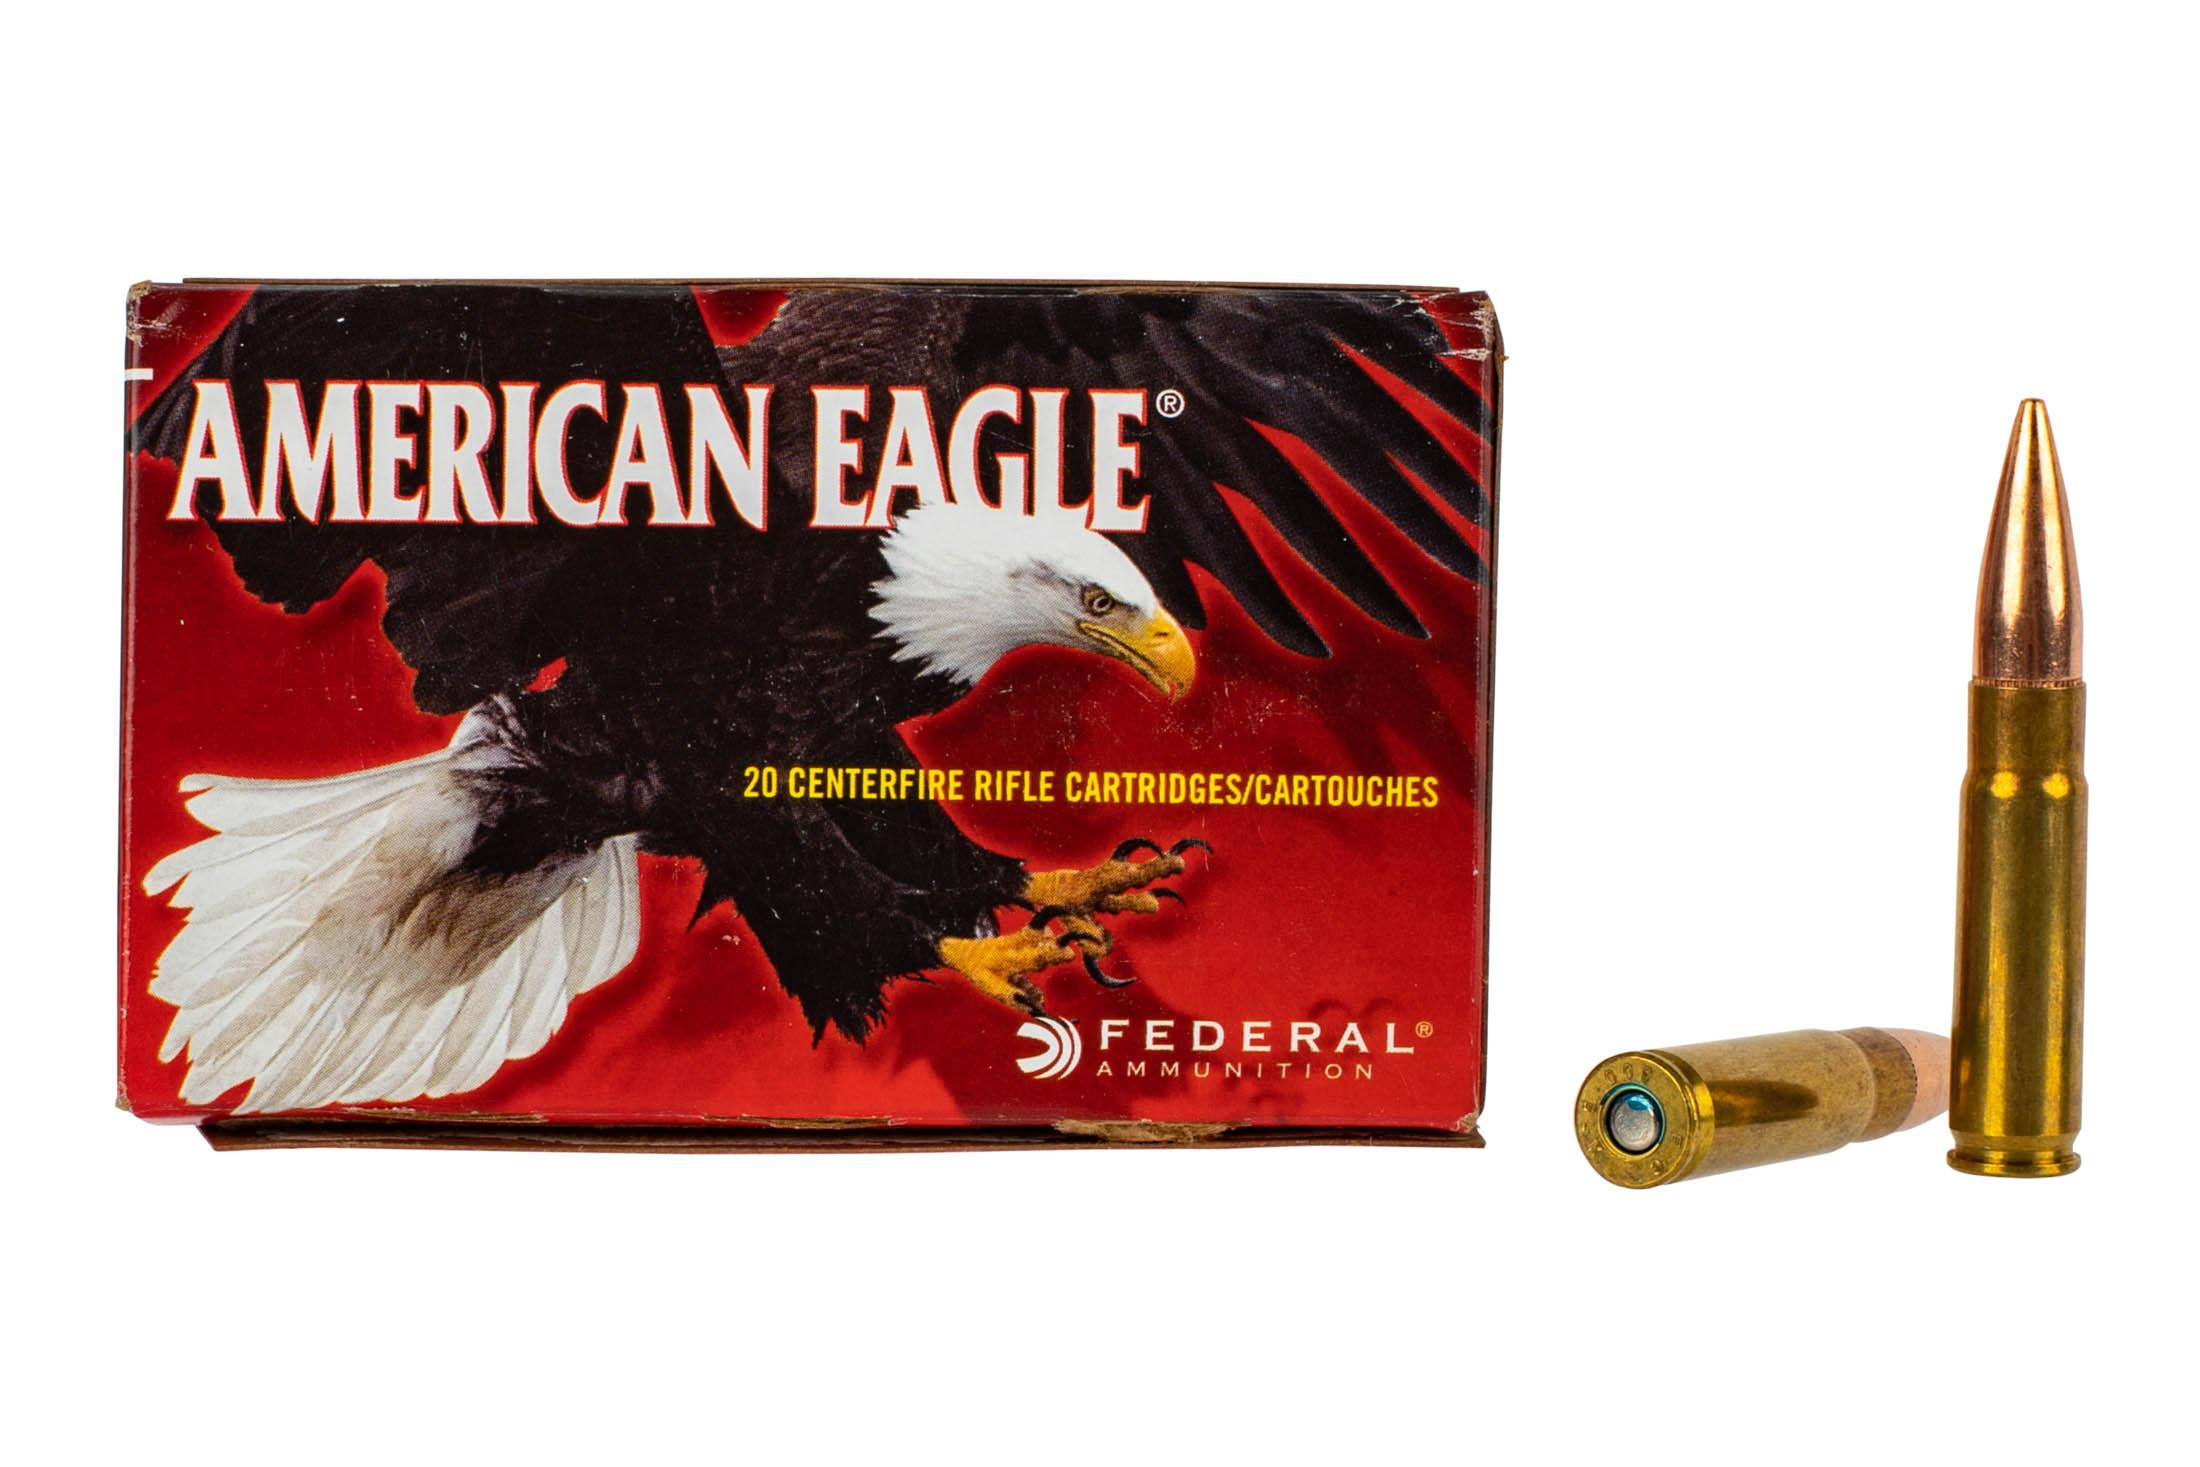 Federal American Eagle 300 BLK ammo features a 150 grain FMJ bullet